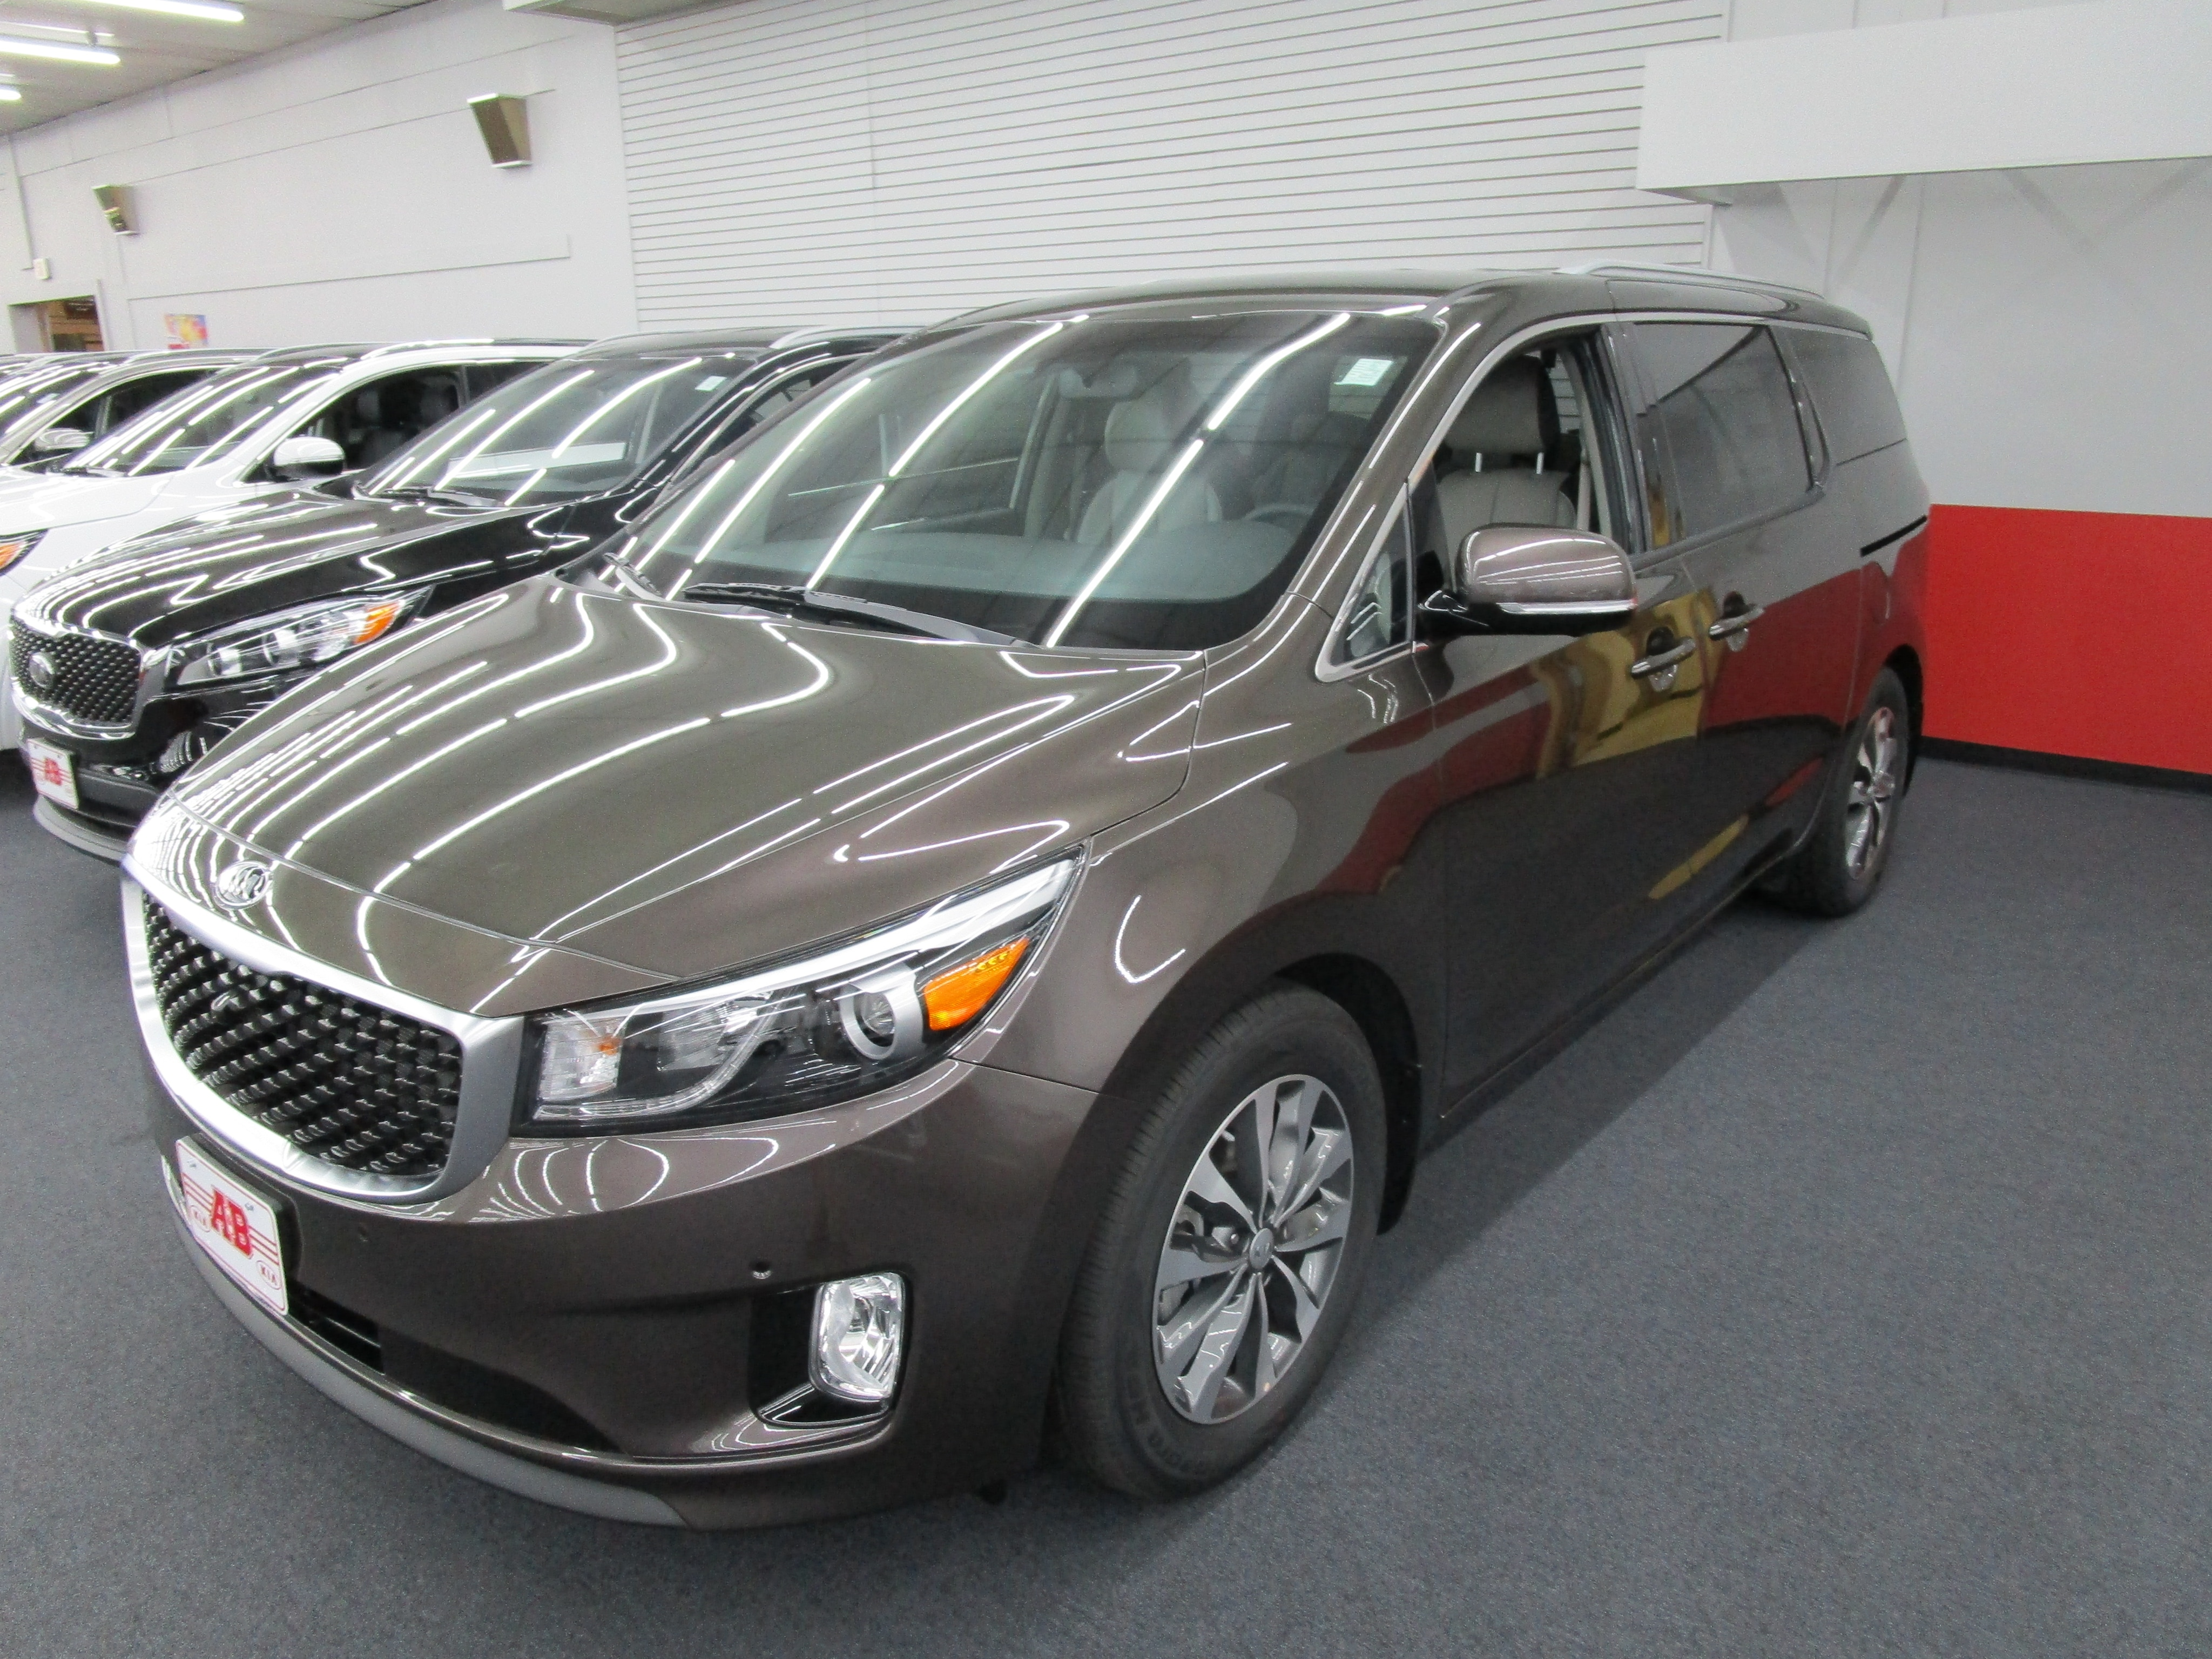 A B Kia Featured Vehicles A B Kia